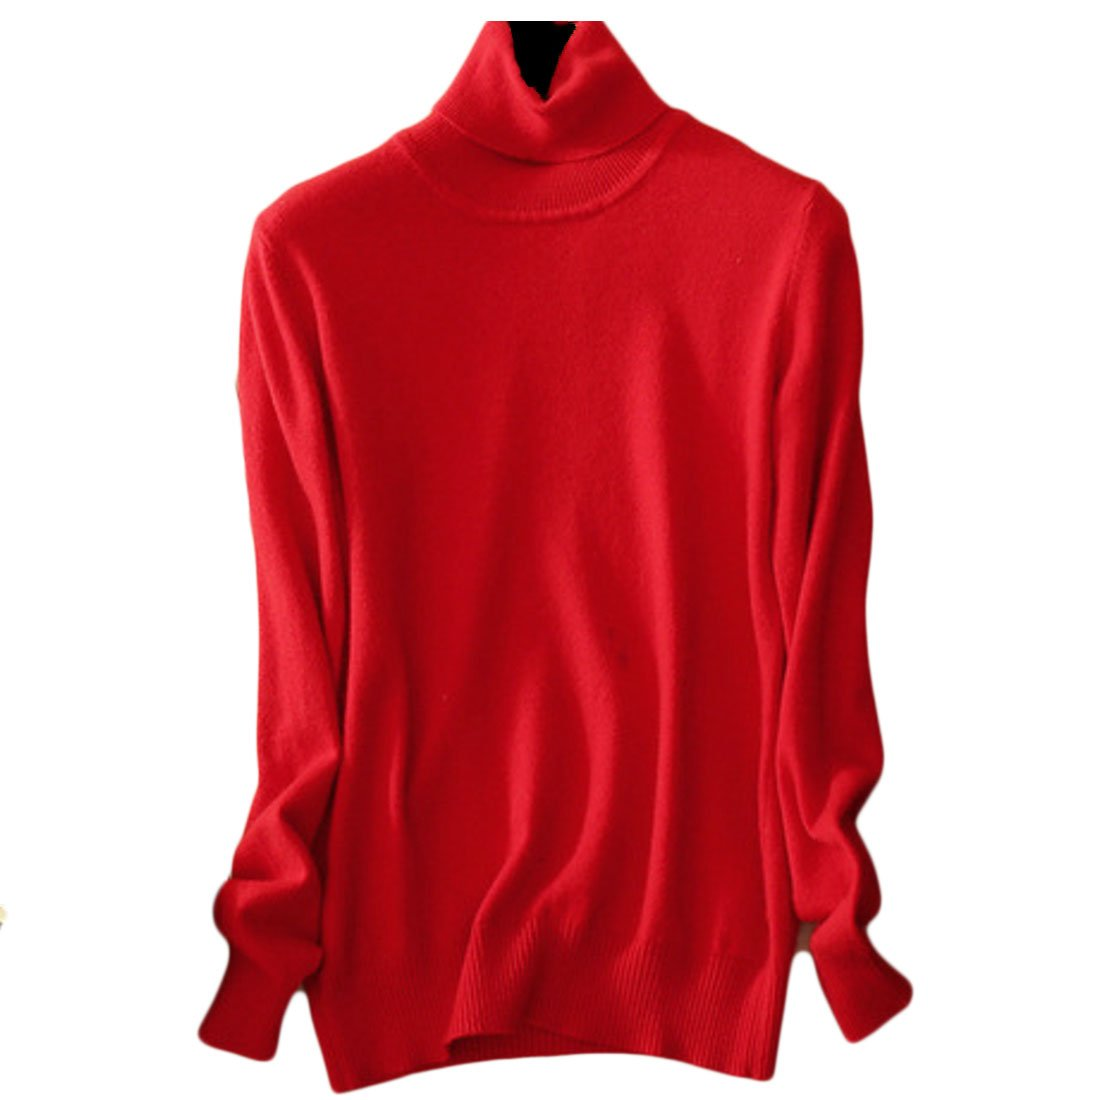 UUYUK-Women Fashion Long Sleeve Turtle Neck Loose Pullover Knit Sweaters